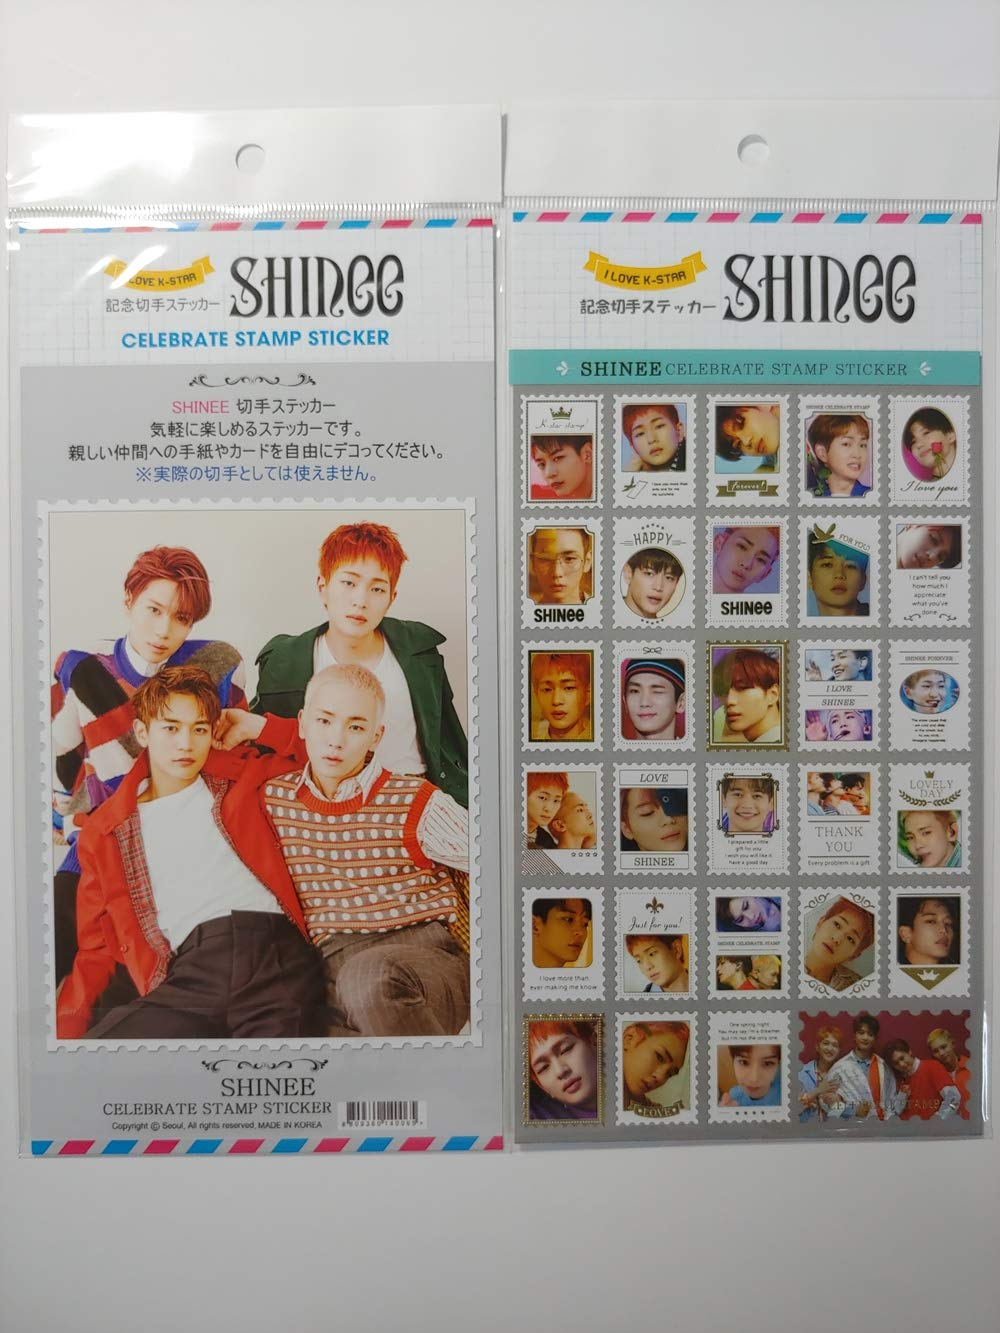 SM ENTERTAINMENT Shinee LIGHTSTICK Official + Celebrate Stamp Sticker 1ea by SM ENTERTAINMENT (Image #6)